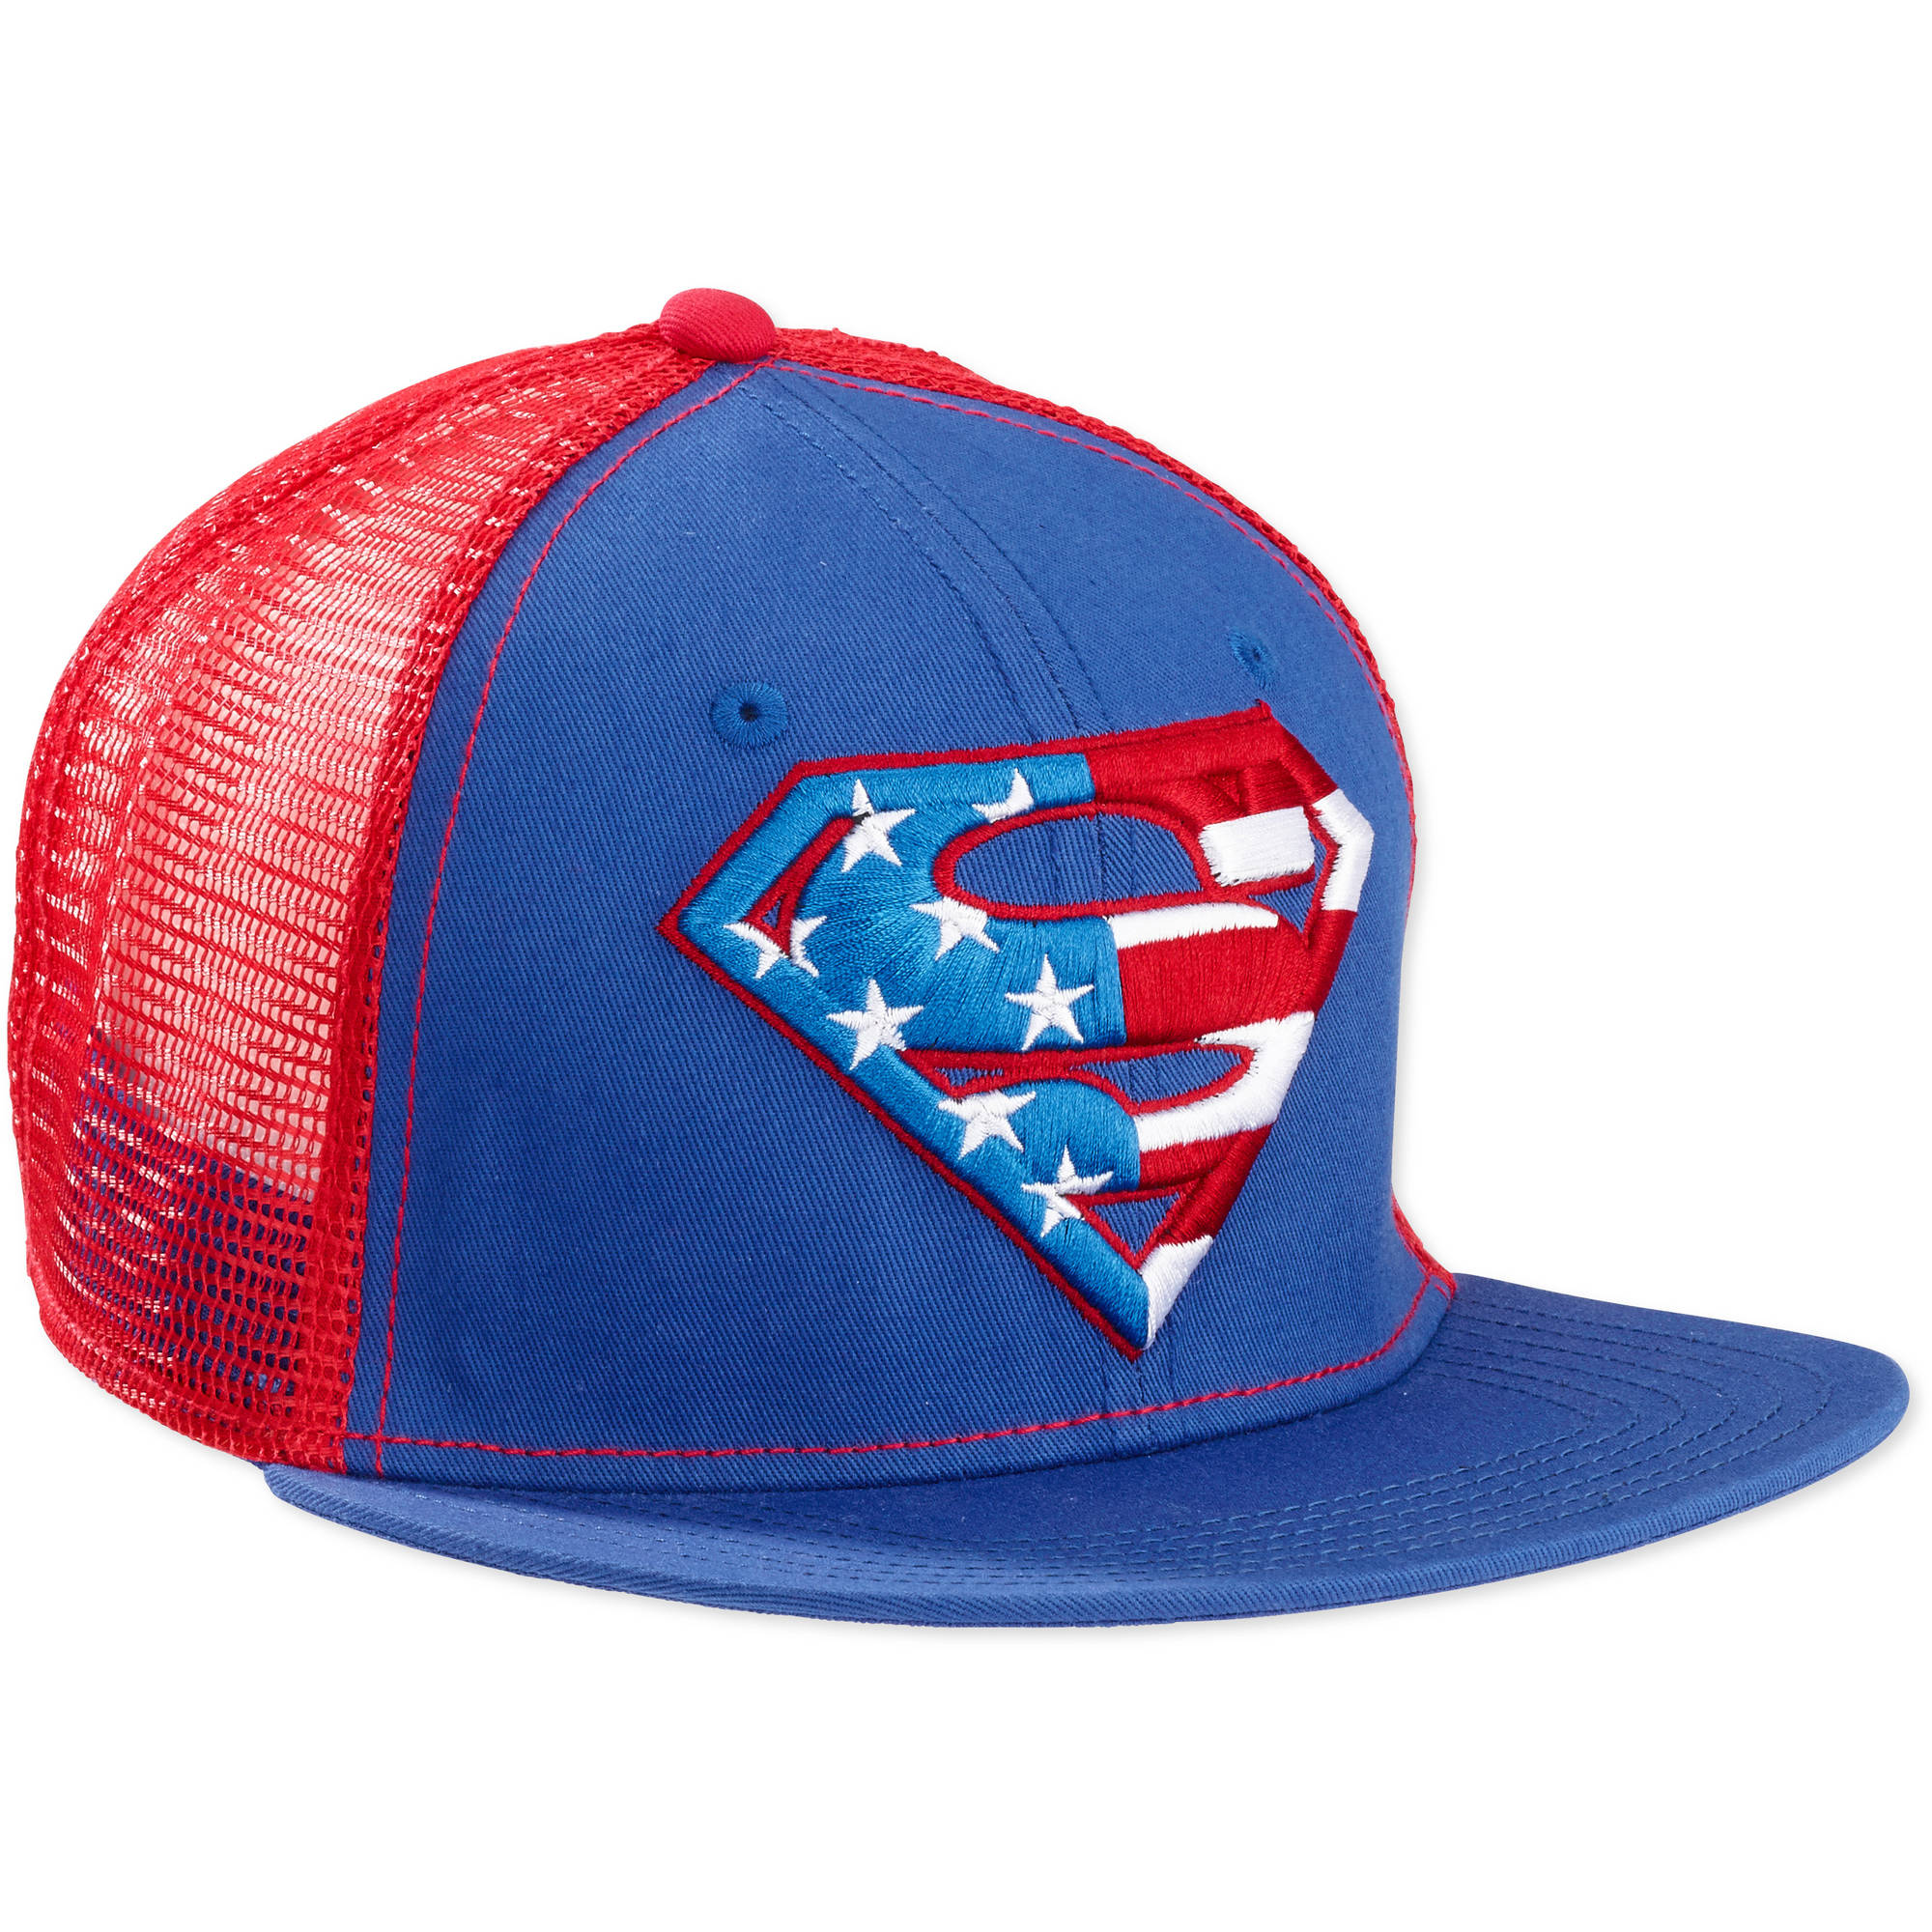 Men's Superman Snap Back Hat